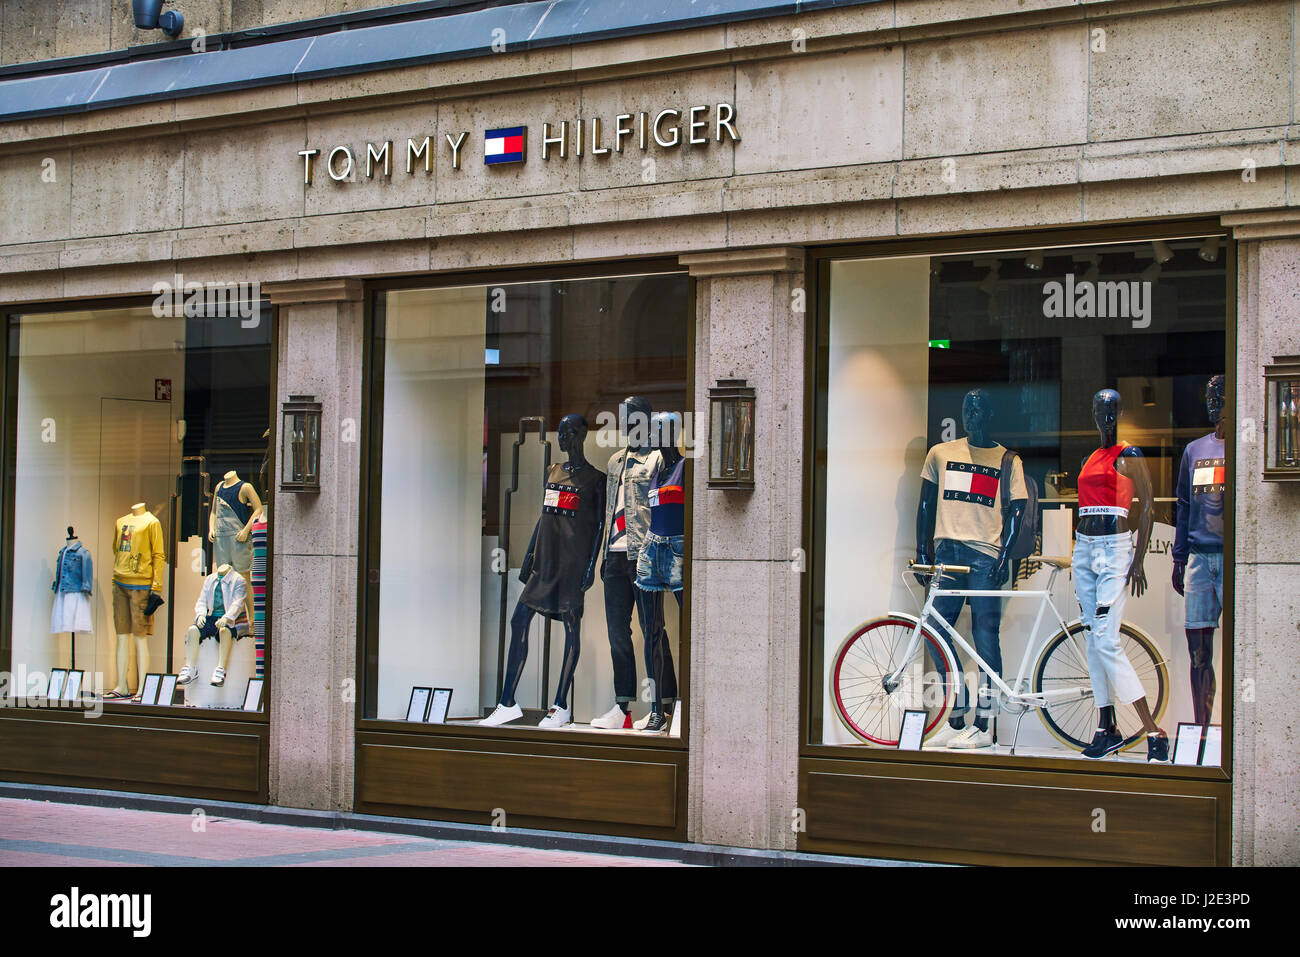 Find Tommy Hilfiger Outlet Locations * Store locations can change frequently. Please check directly with the retailer for a current list of locations before your visit.